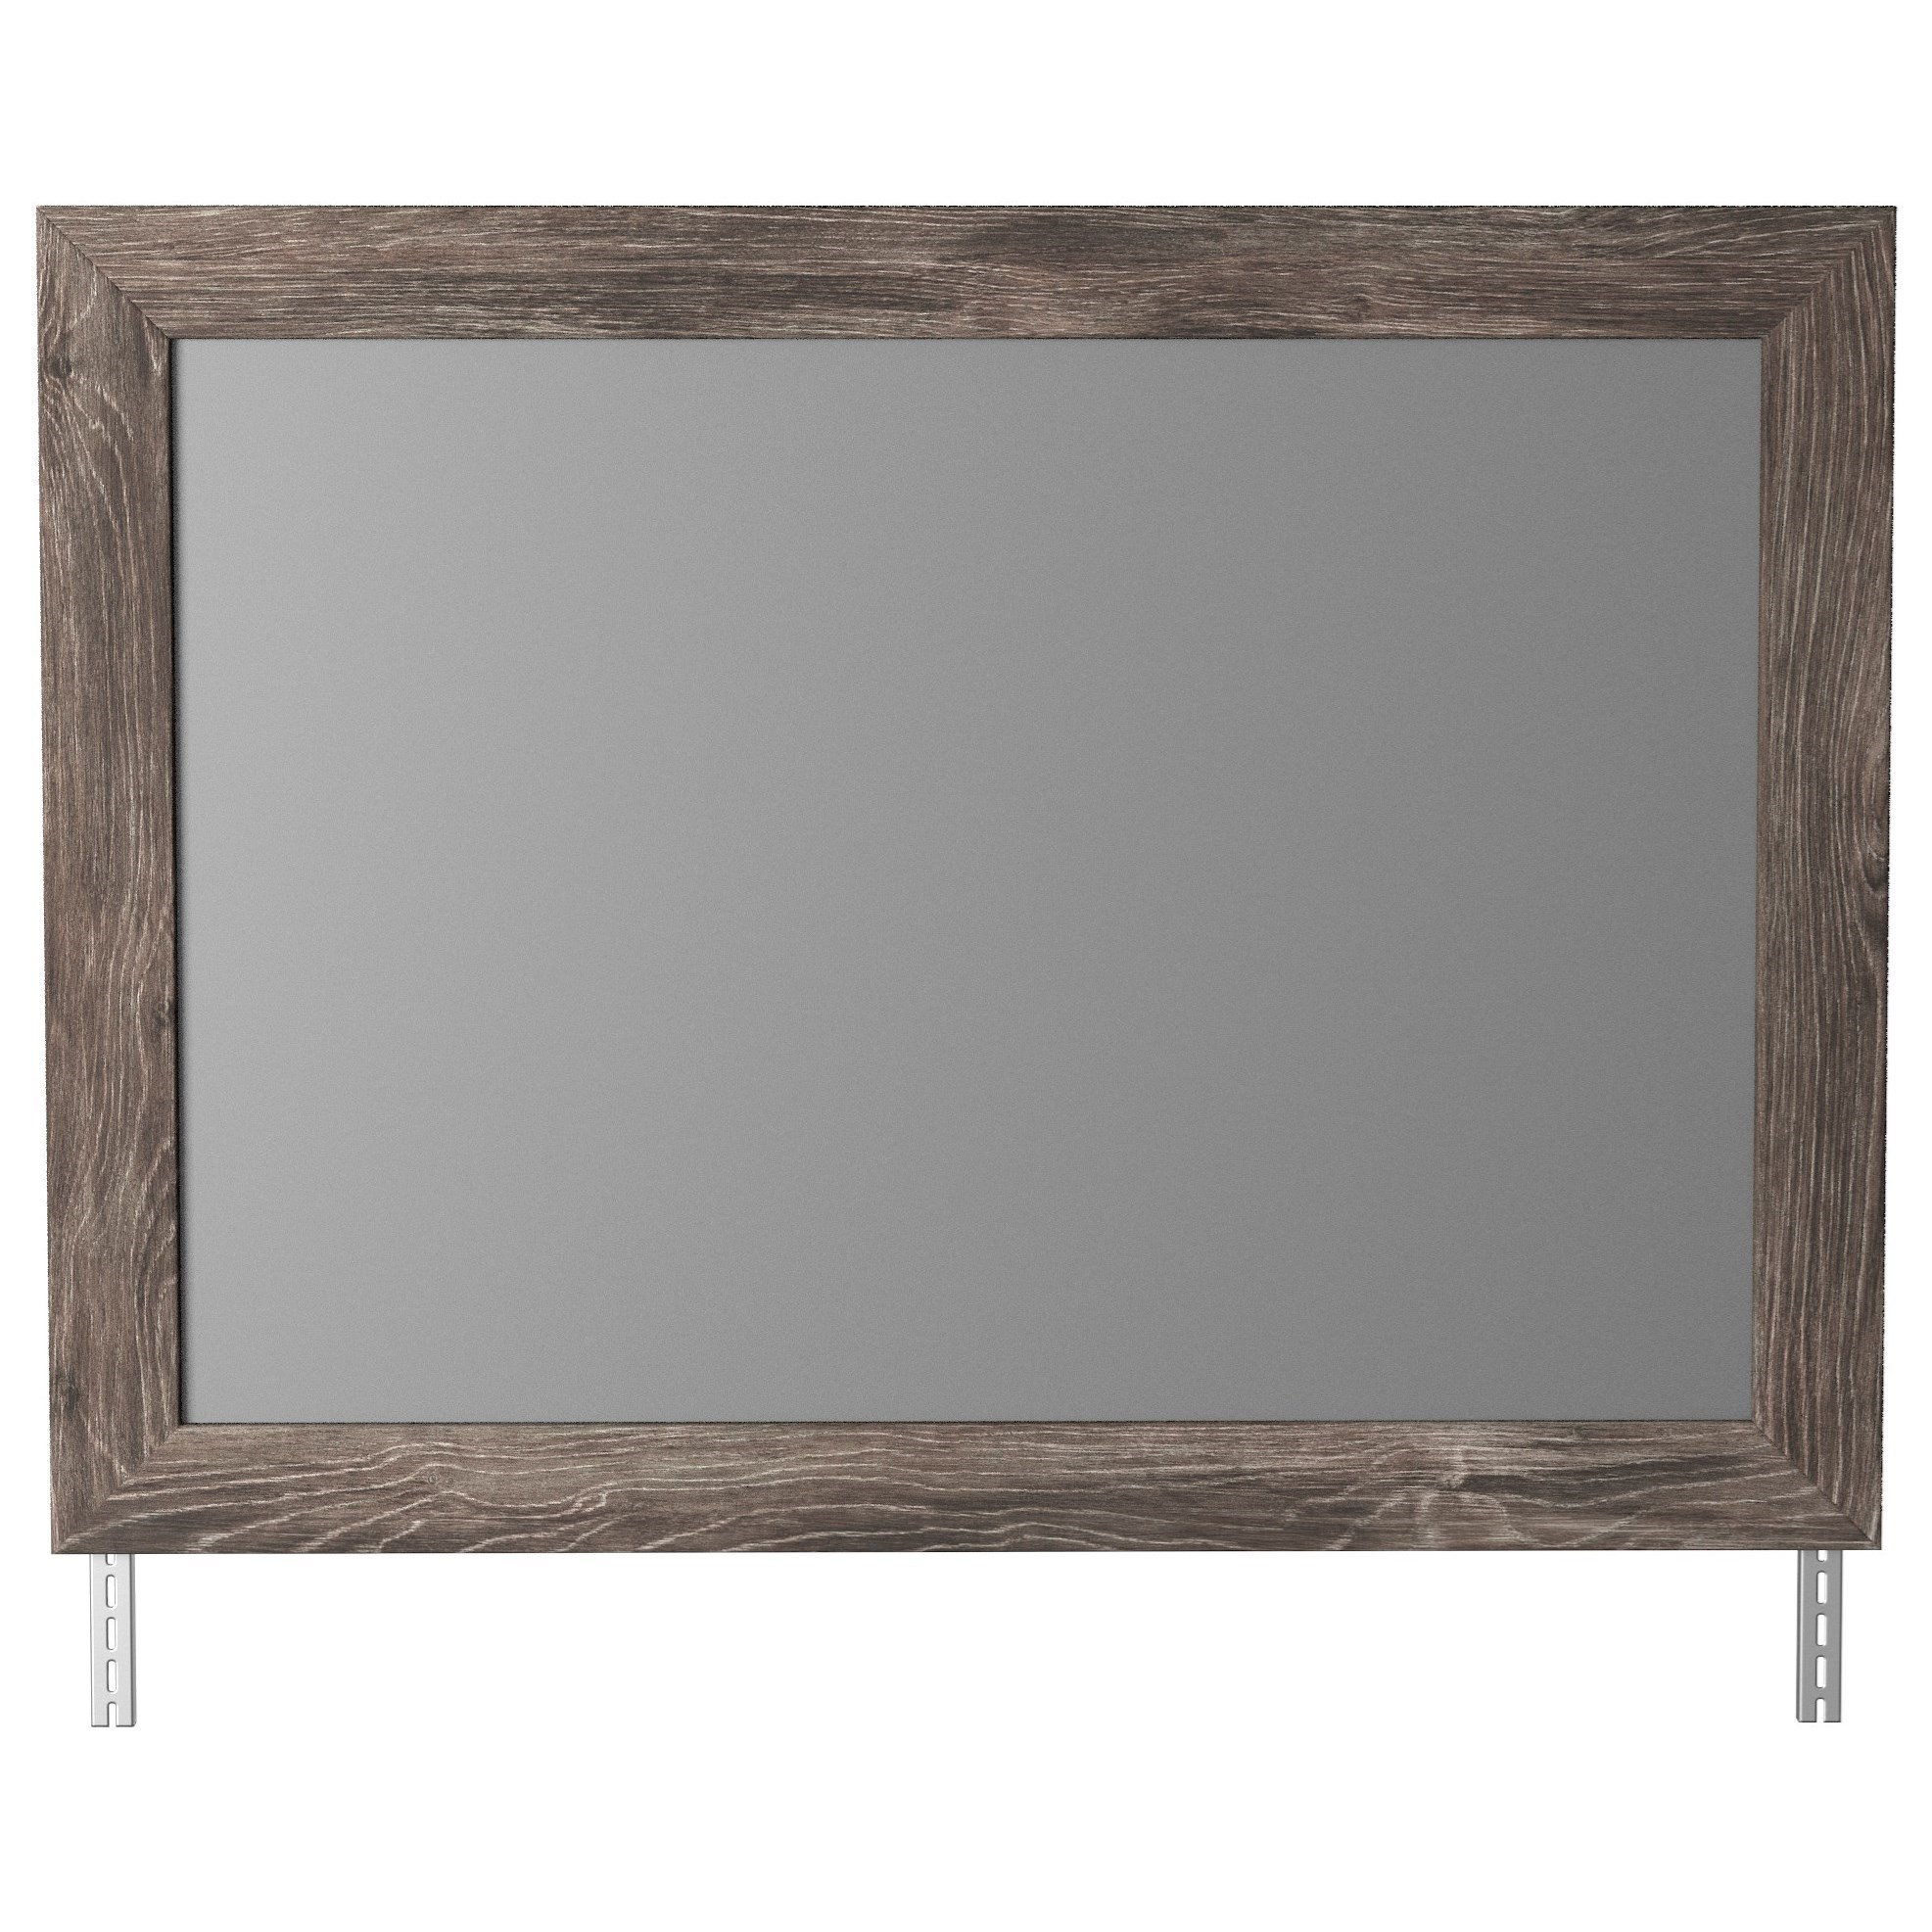 Ralinski Bedroom Mirror by Signature Design by Ashley at Lapeer Furniture & Mattress Center